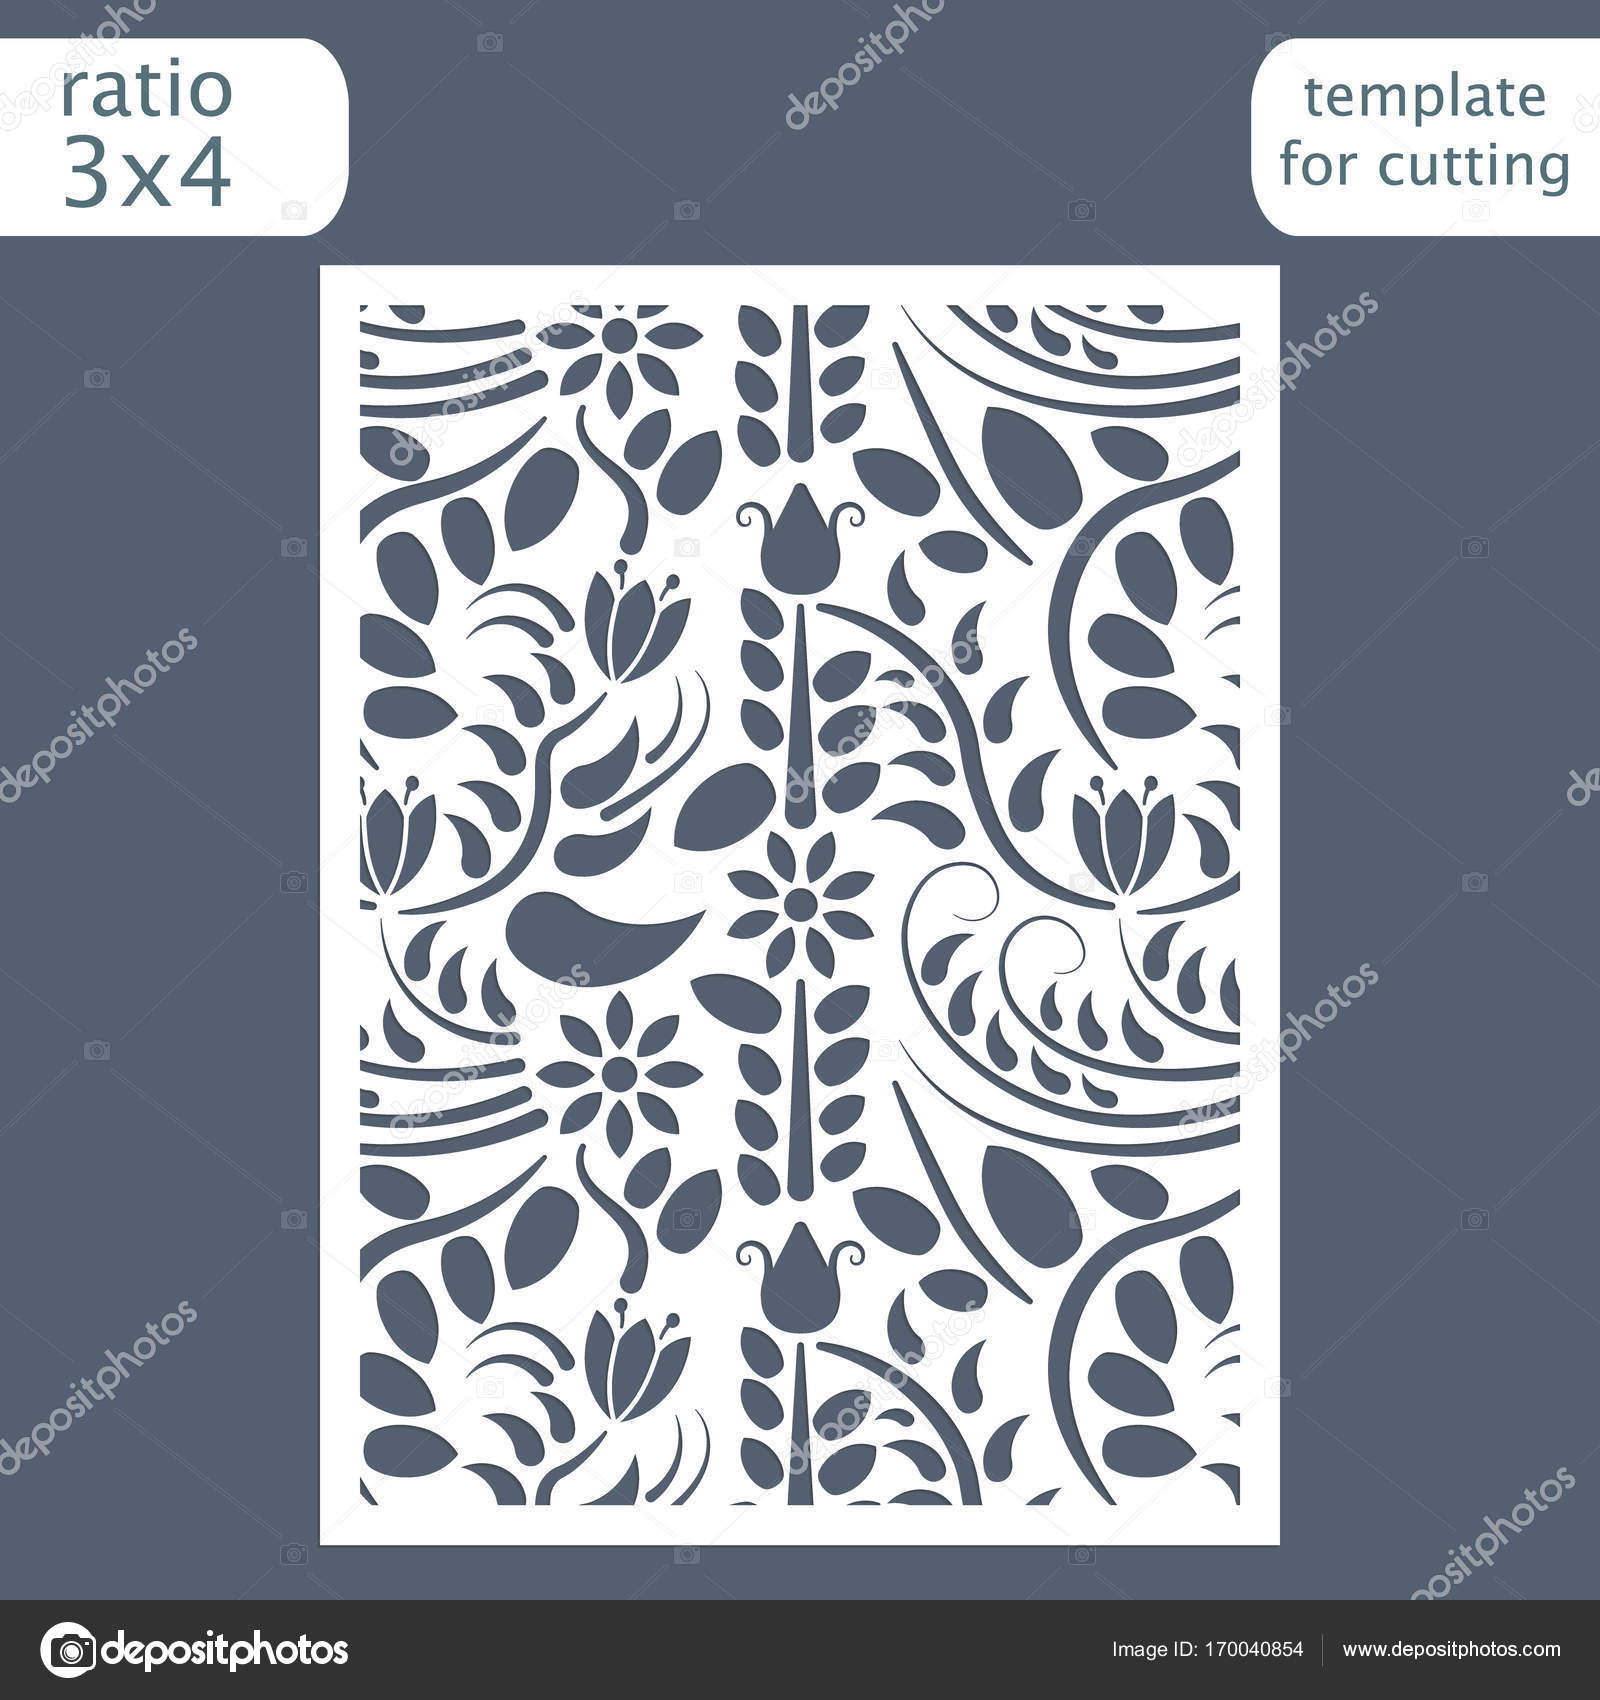 Laser cut wedding invitation card template. Cut out the paper card ...